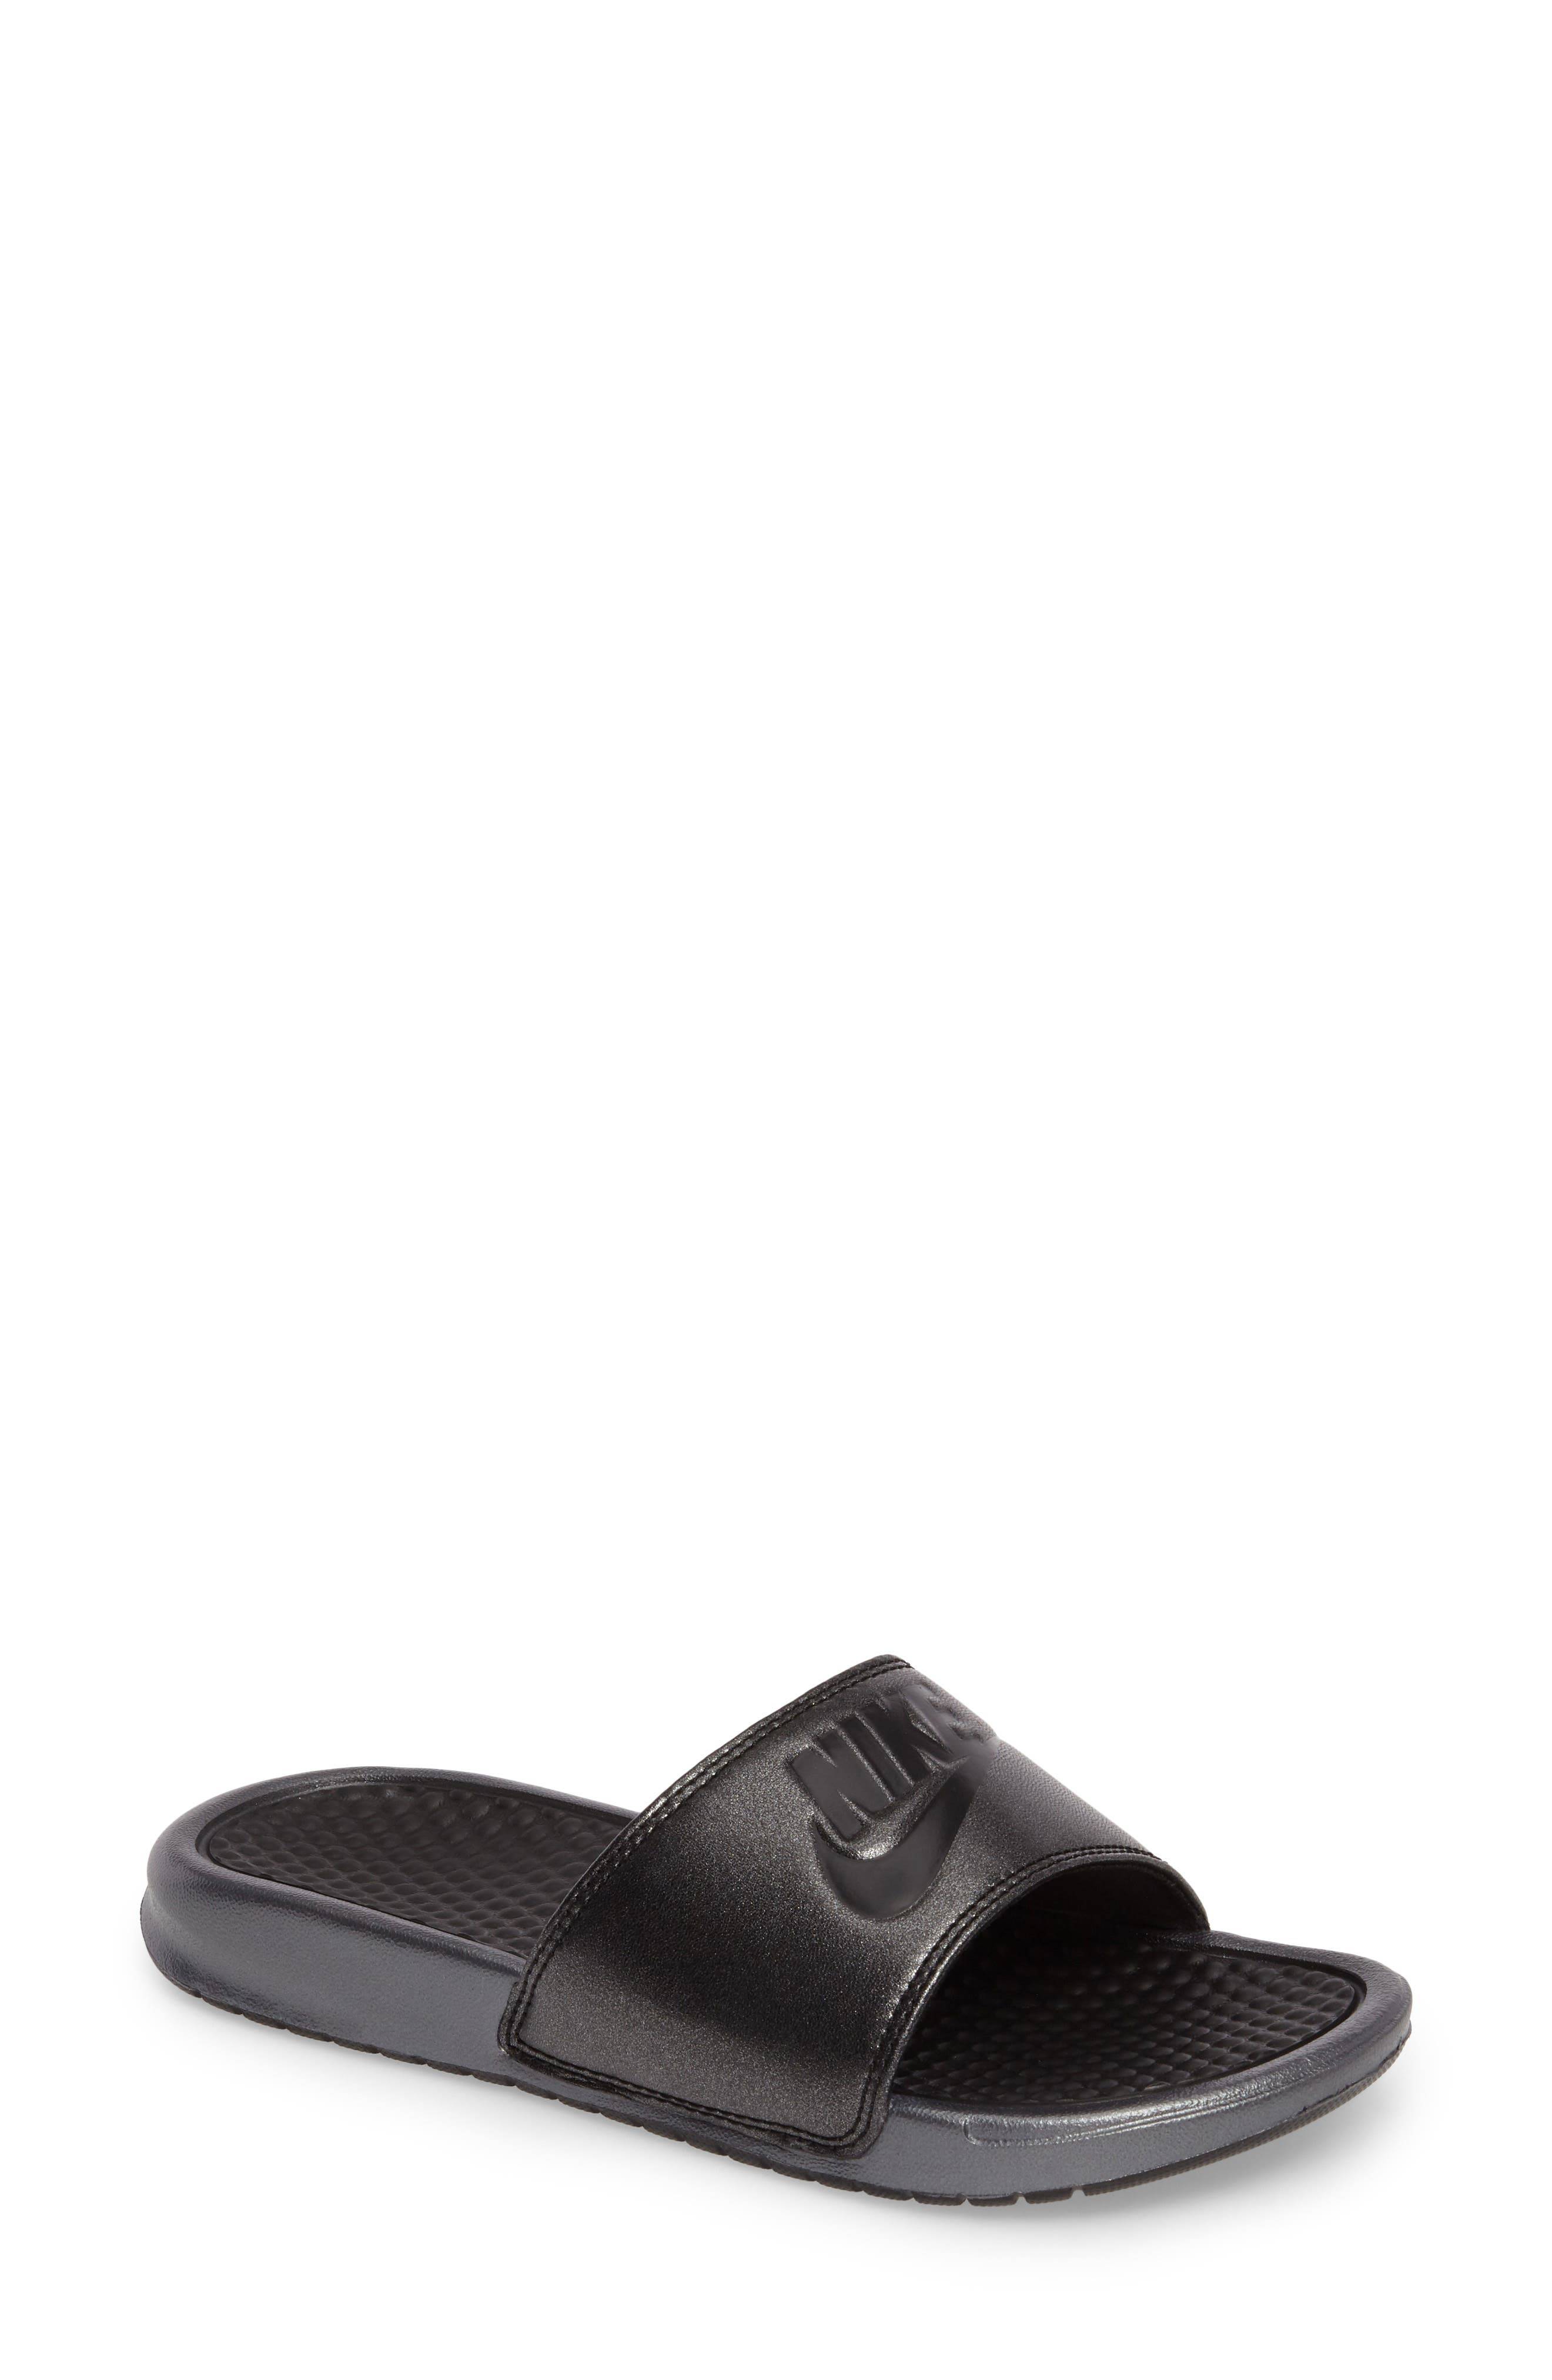 Benassi Slide Sandal,                             Main thumbnail 1, color,                             001